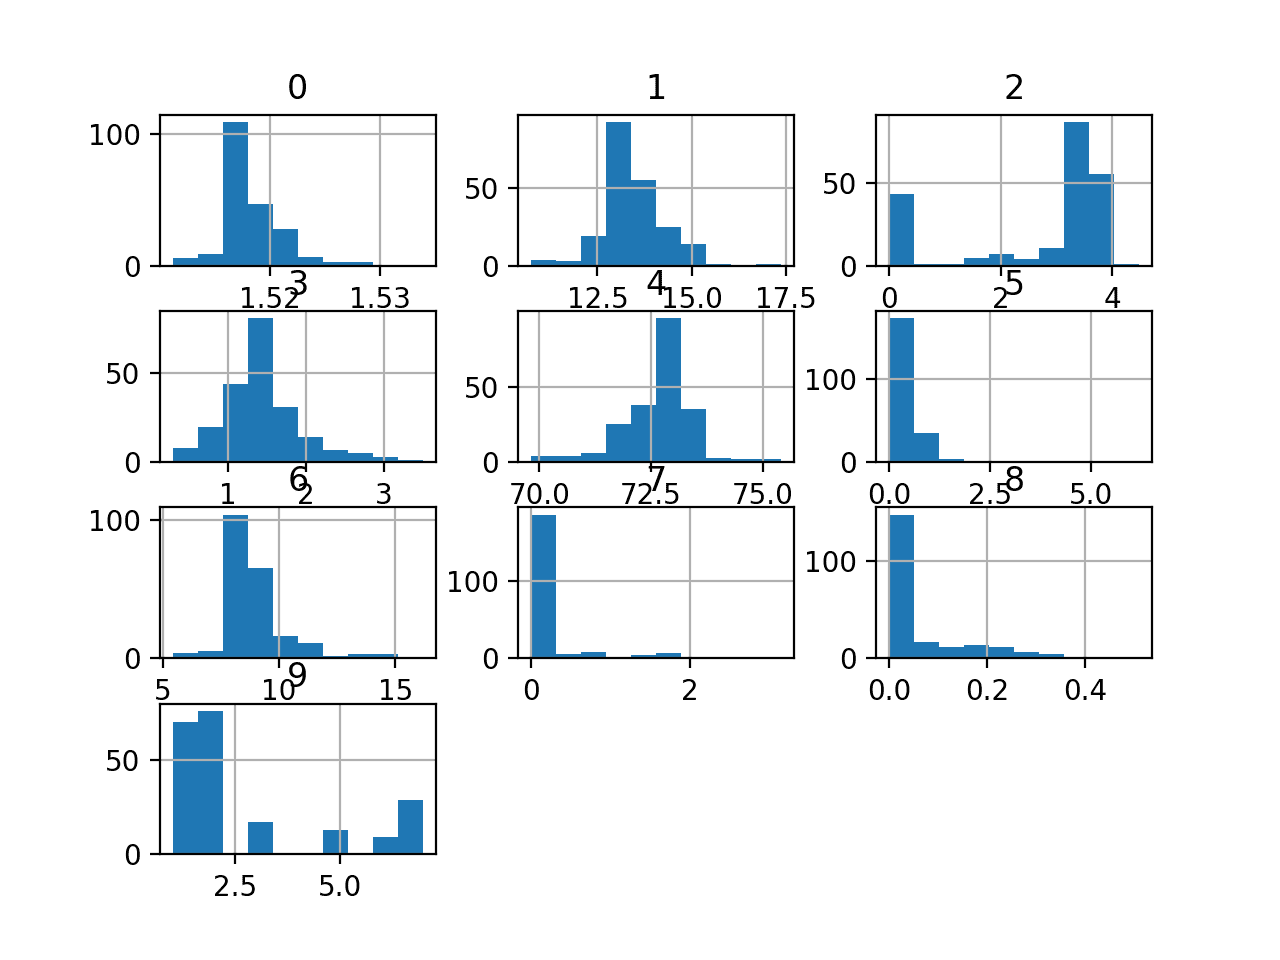 Histogram of Variables in the Glass Identification Dataset